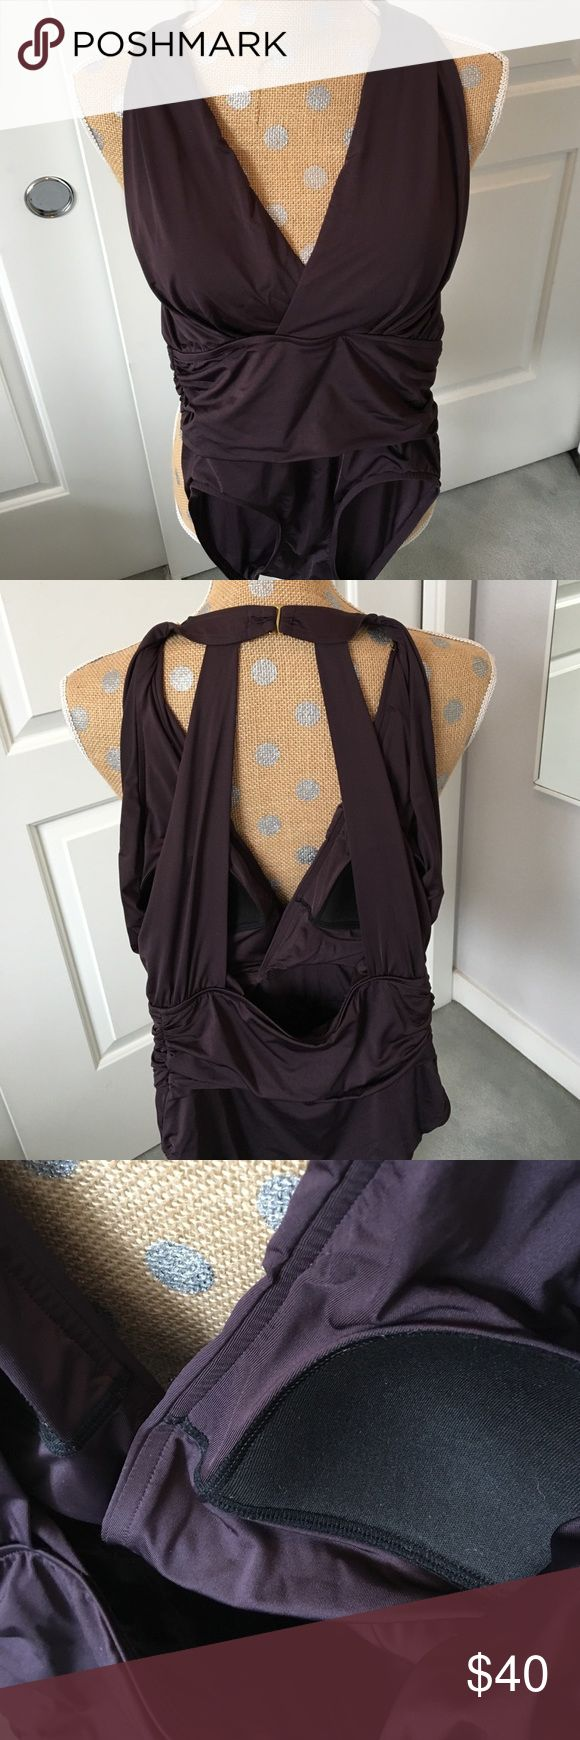 Badgley Mischka dark brown one piece bathing suit! Designer style in this one piece suit. No pilling, beautiful condition! Badgley Mischka Swim One Pieces